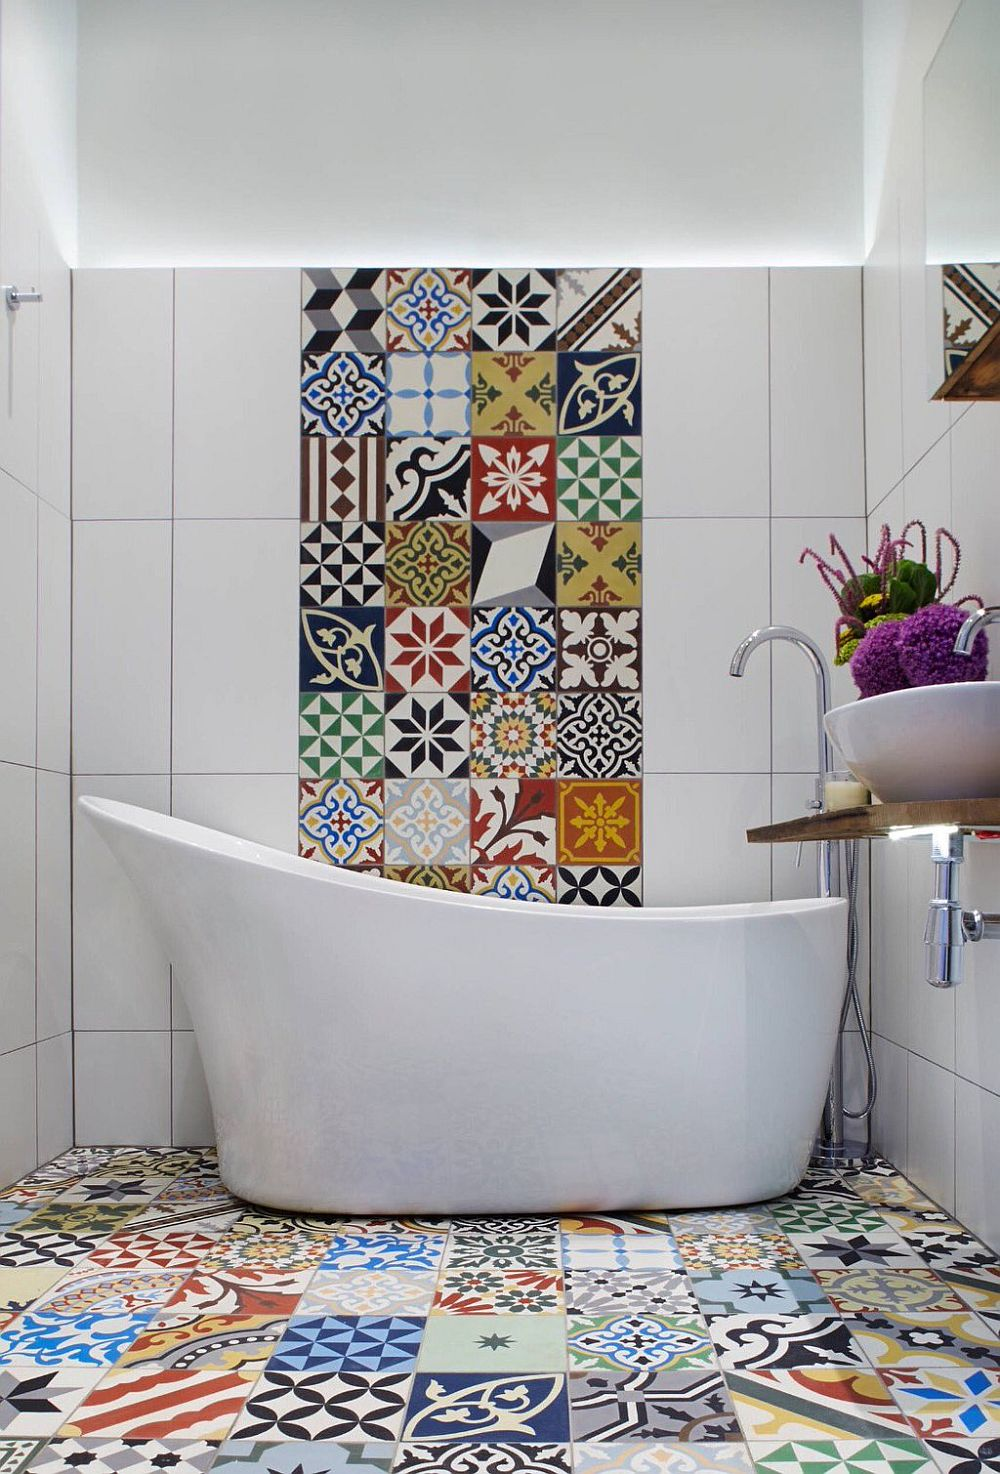 Contemporary Mediterranean bathroom for those who love patchwork tiles [Design: Cassidy Hughes Interior Design & Styling]